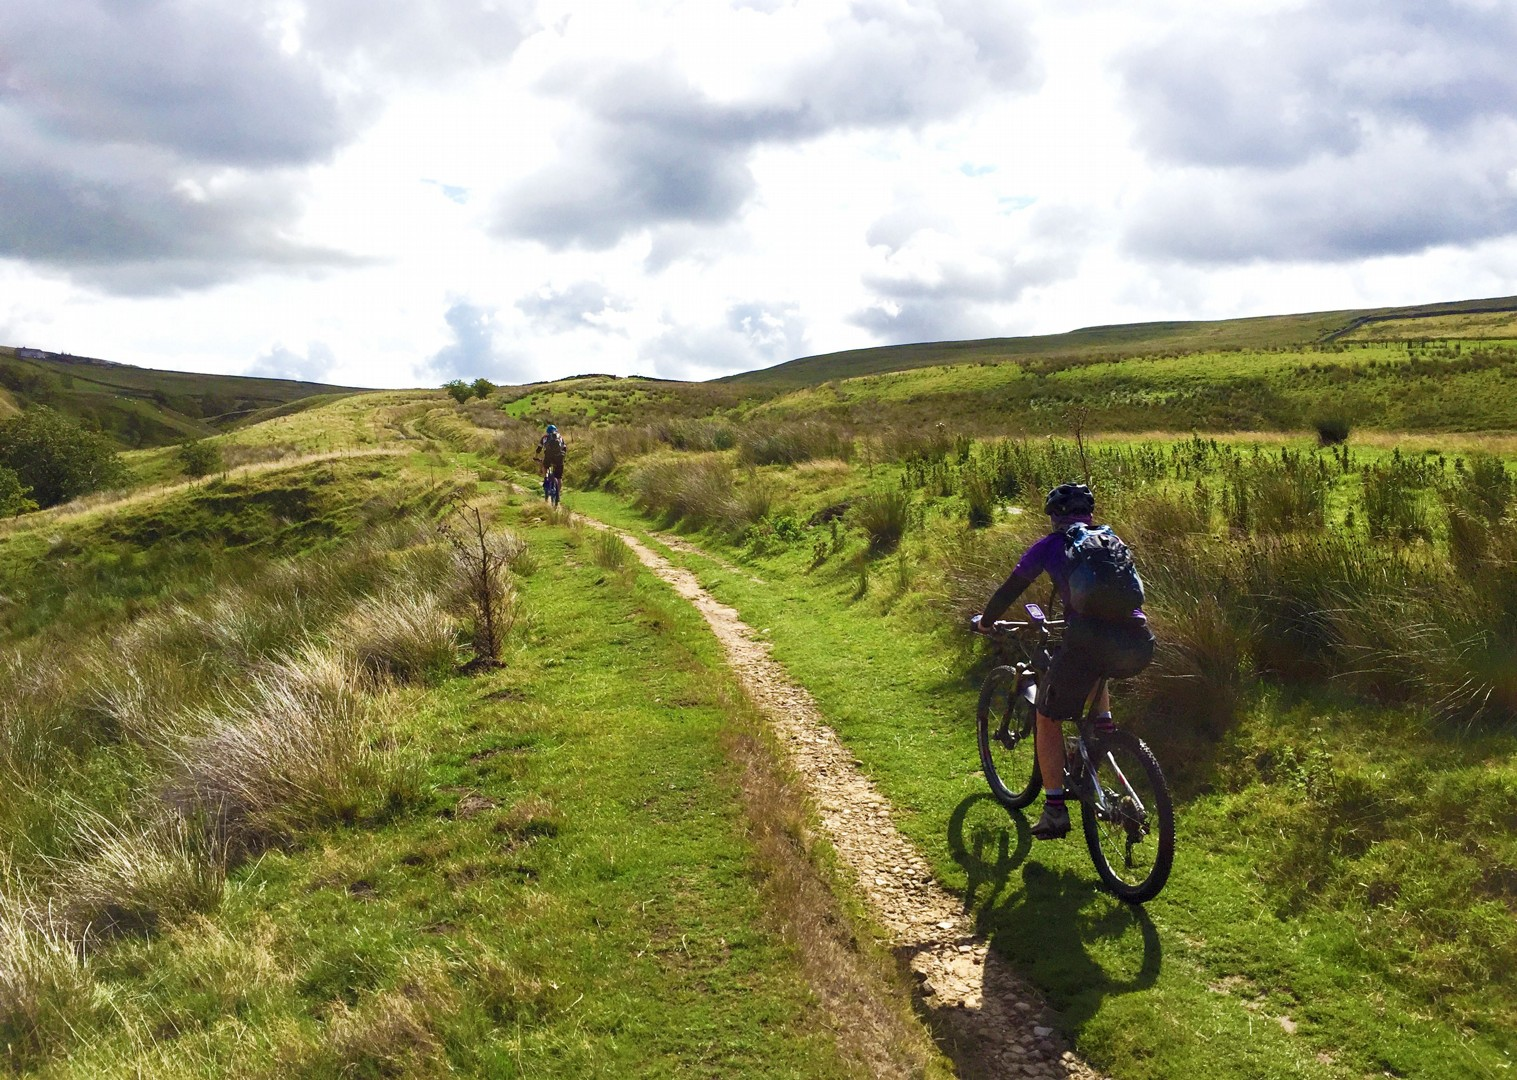 remote-moorland-singletrack-mtb-mountain-biking-pennine-bridleway.JPG - UK - Pennine Bridleway - Guided Mountain Bike Weekend - Mountain Biking